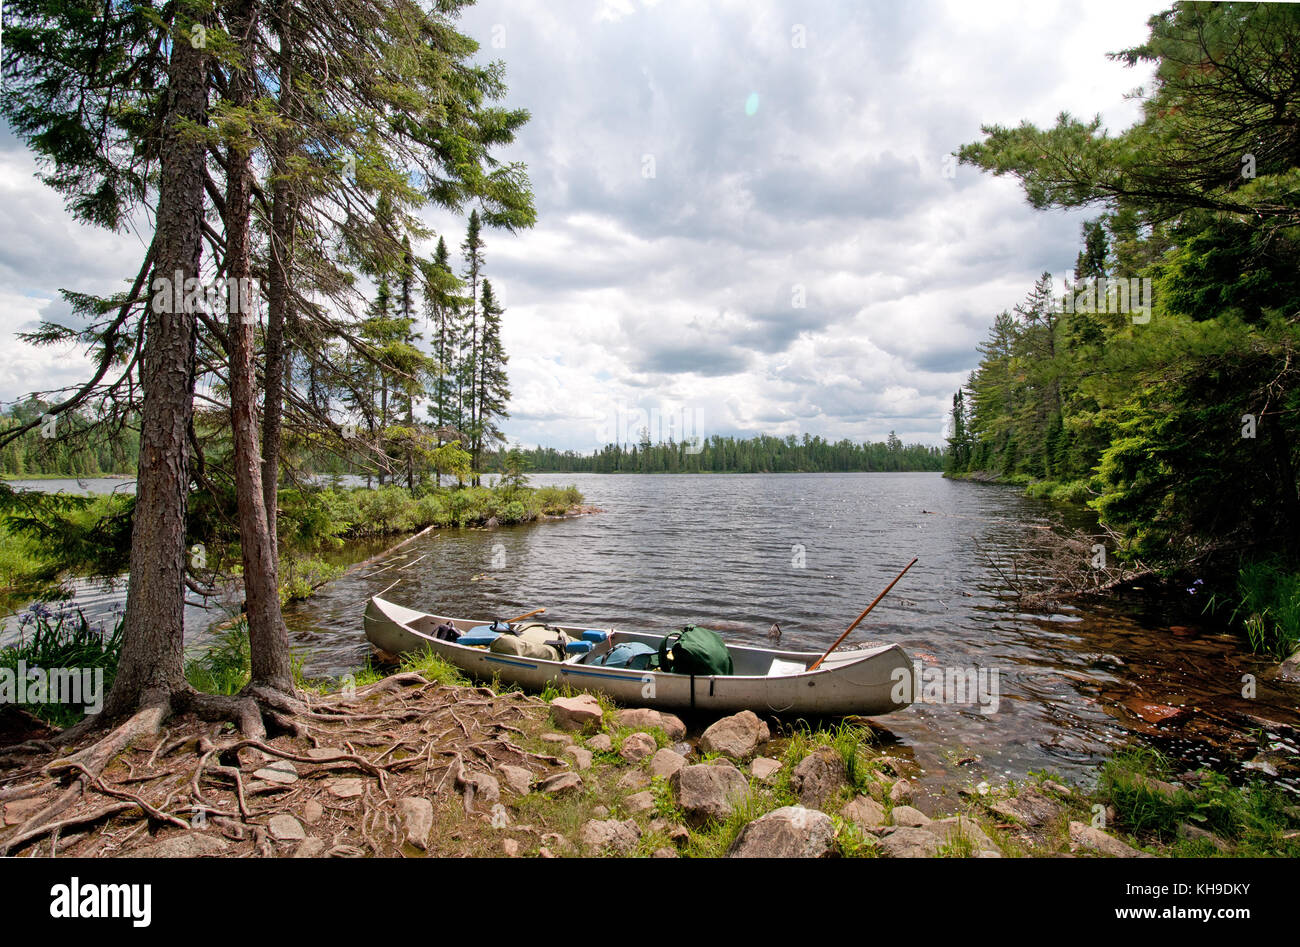 Canoe ready to set off on Sitka Lake in the Boundary Waters - Stock Image